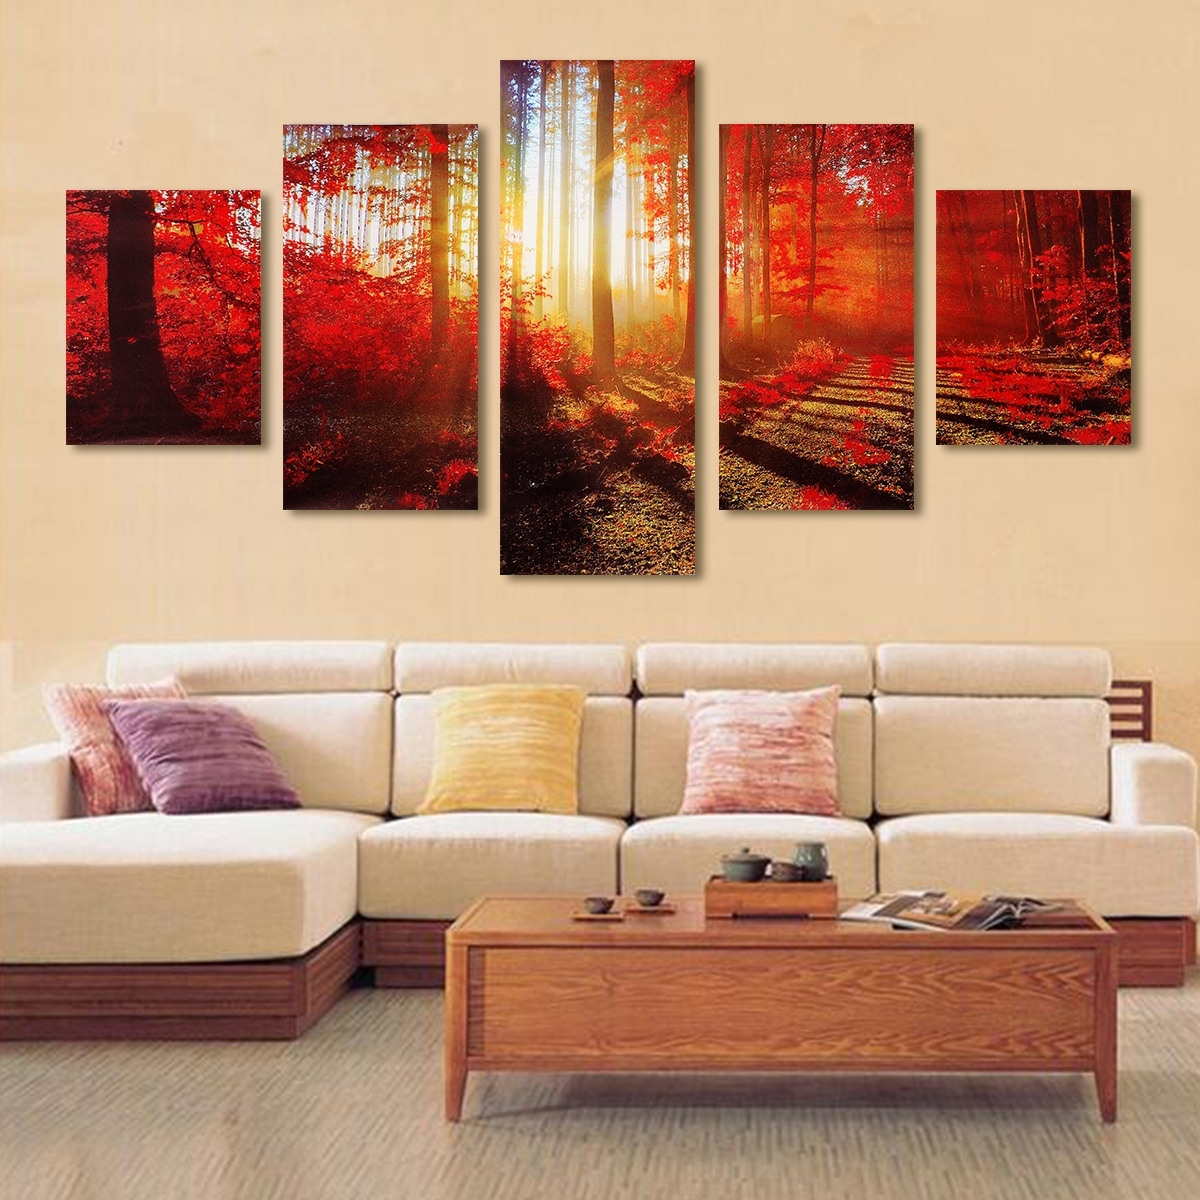 5Pcs Modern Art Oil Paintings Canvas Print Pictures Home Wall Decor pertaining to Most Recent Wall Art Paintings